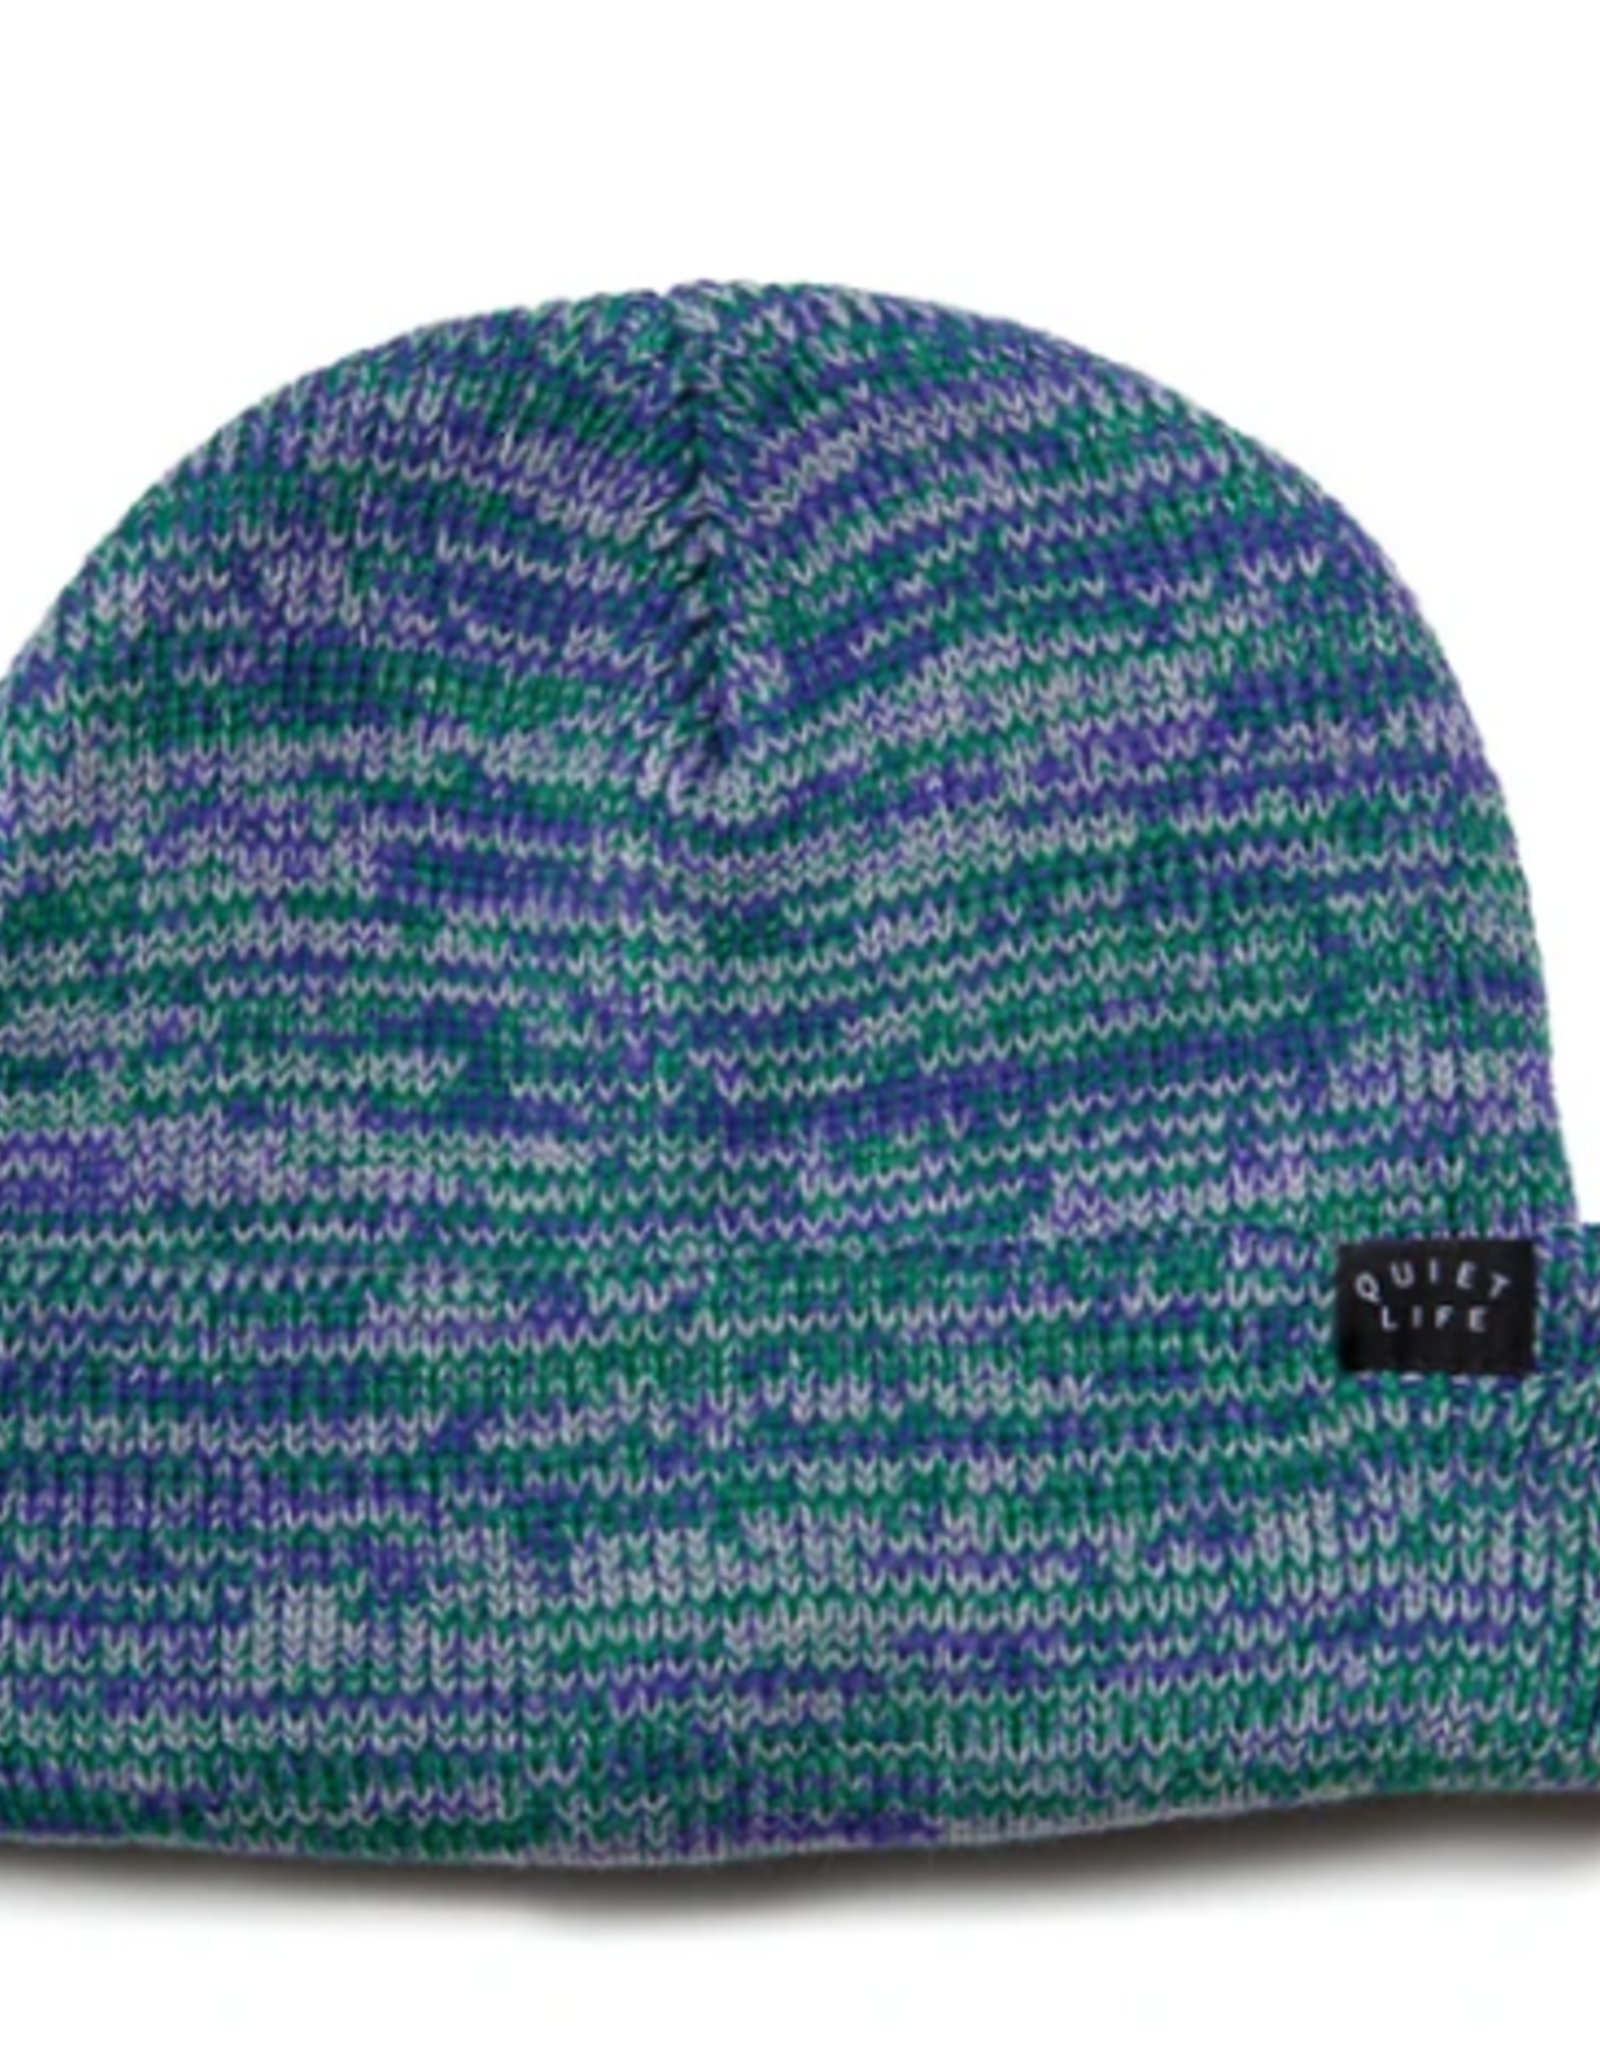 THE QUIET LIFE THE QUIET LIFE SPECKLE BEANIE GREEN PURPLE